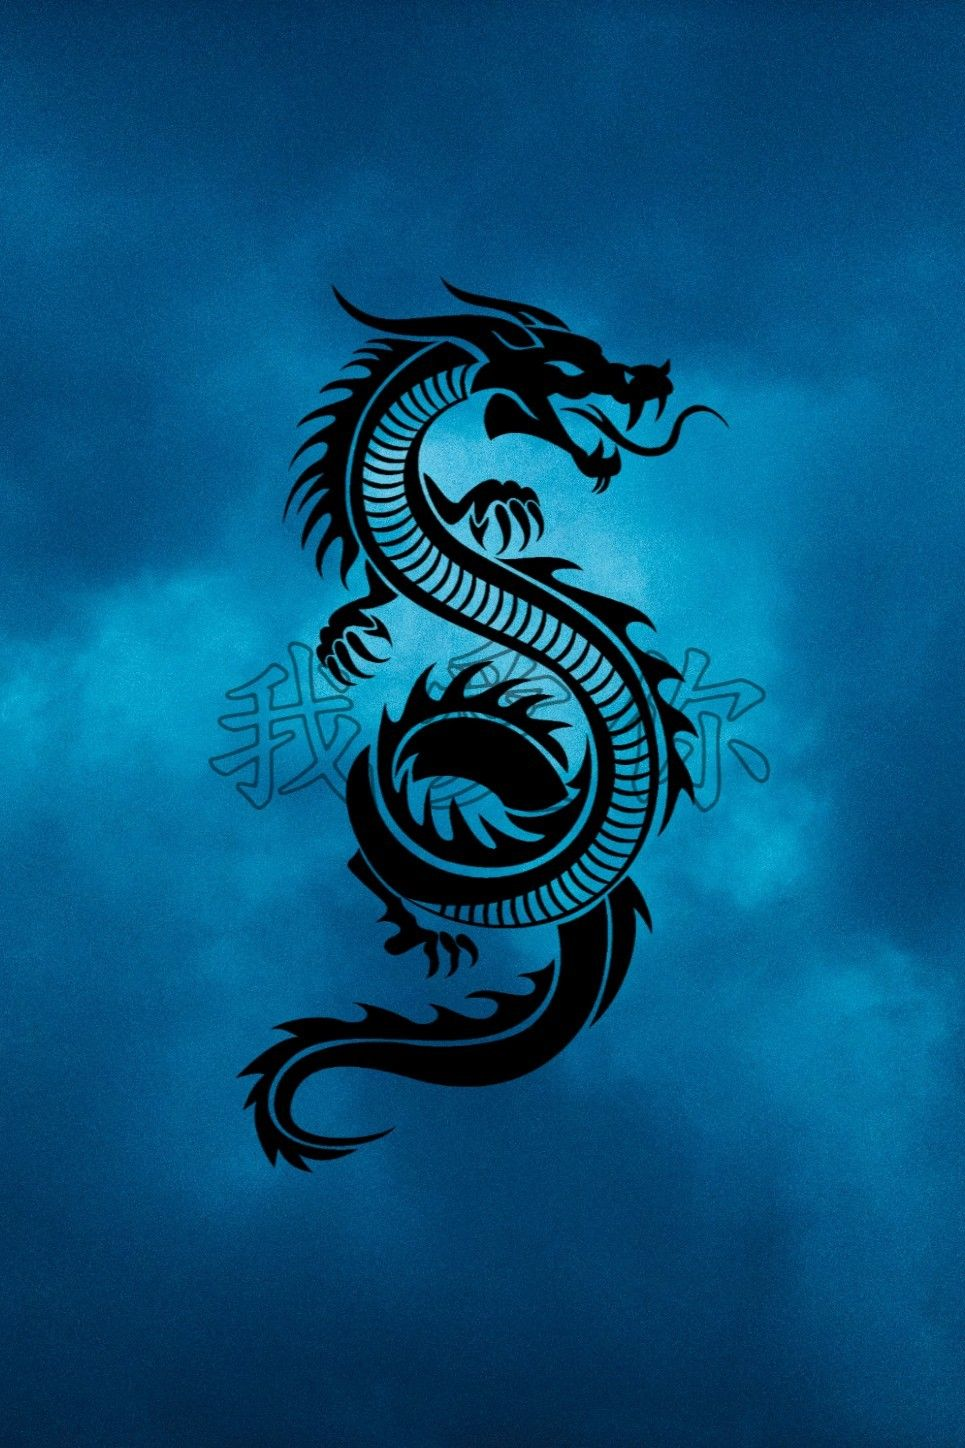 Pin By Ray Moreland On 1 Dragon Pics Dragon Tattoo Art Dragon Artwork Dragon Pictures Tribal tattoo wallpaper hd for mobile